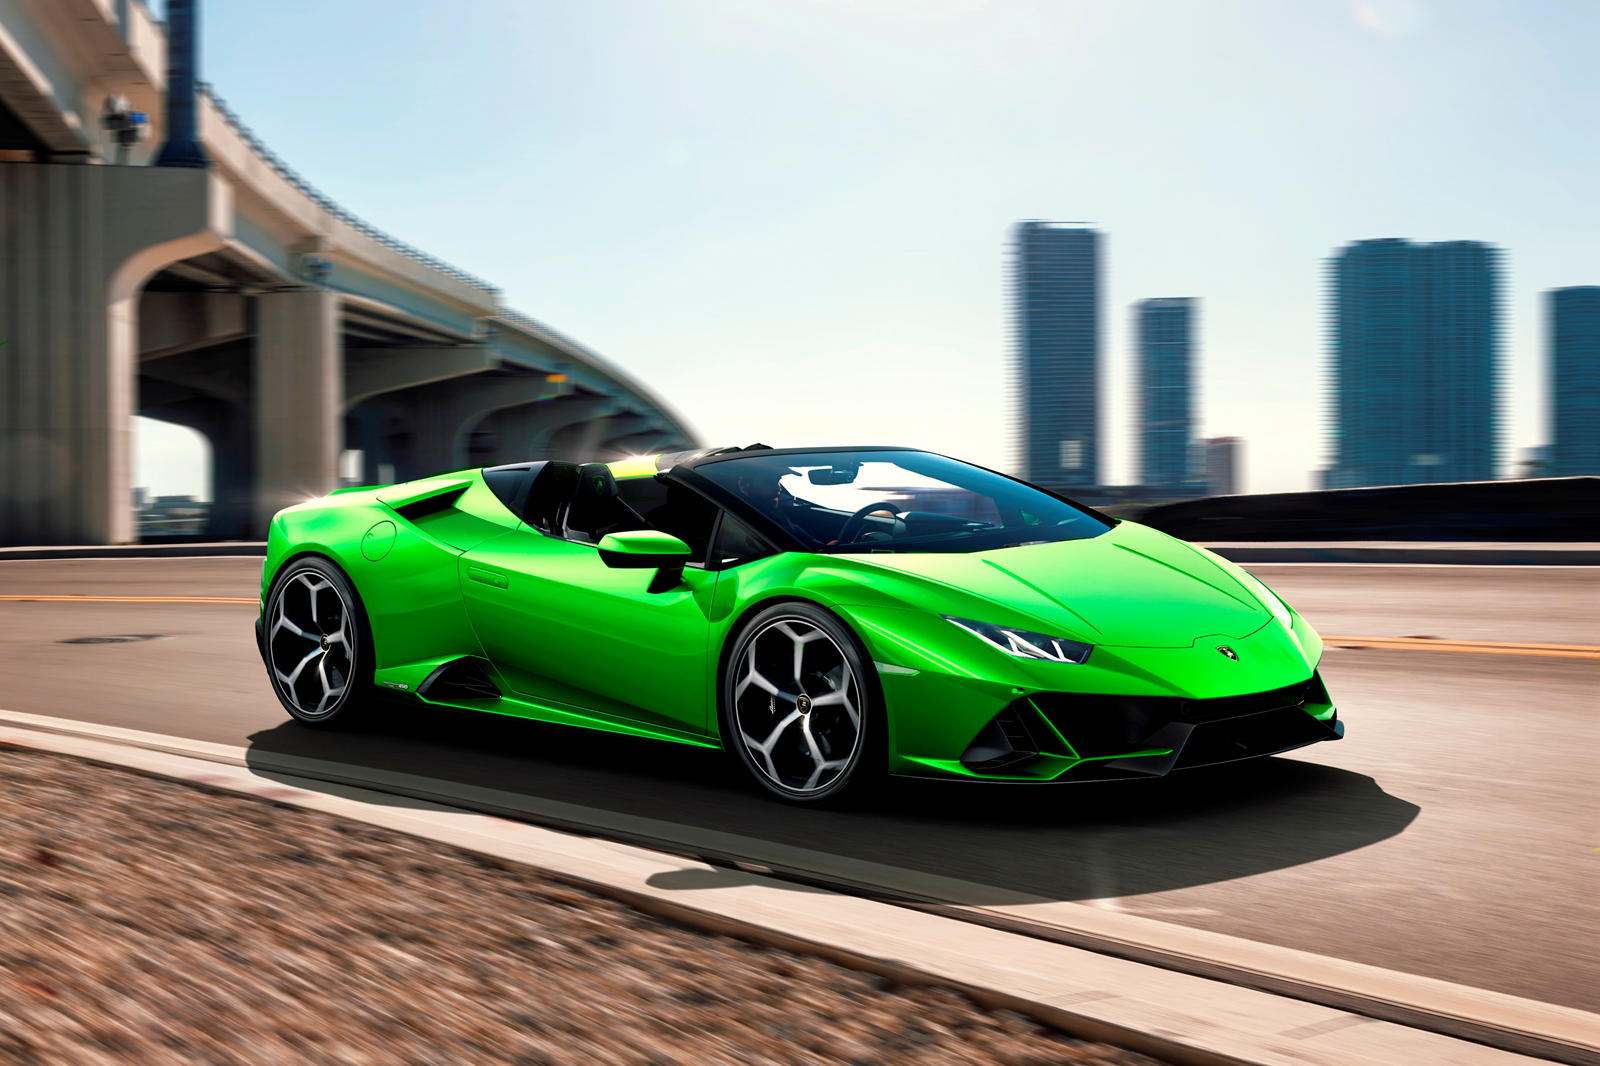 This Is The 2020 Lamborghini Huracan Evo Spyder Carbuzz